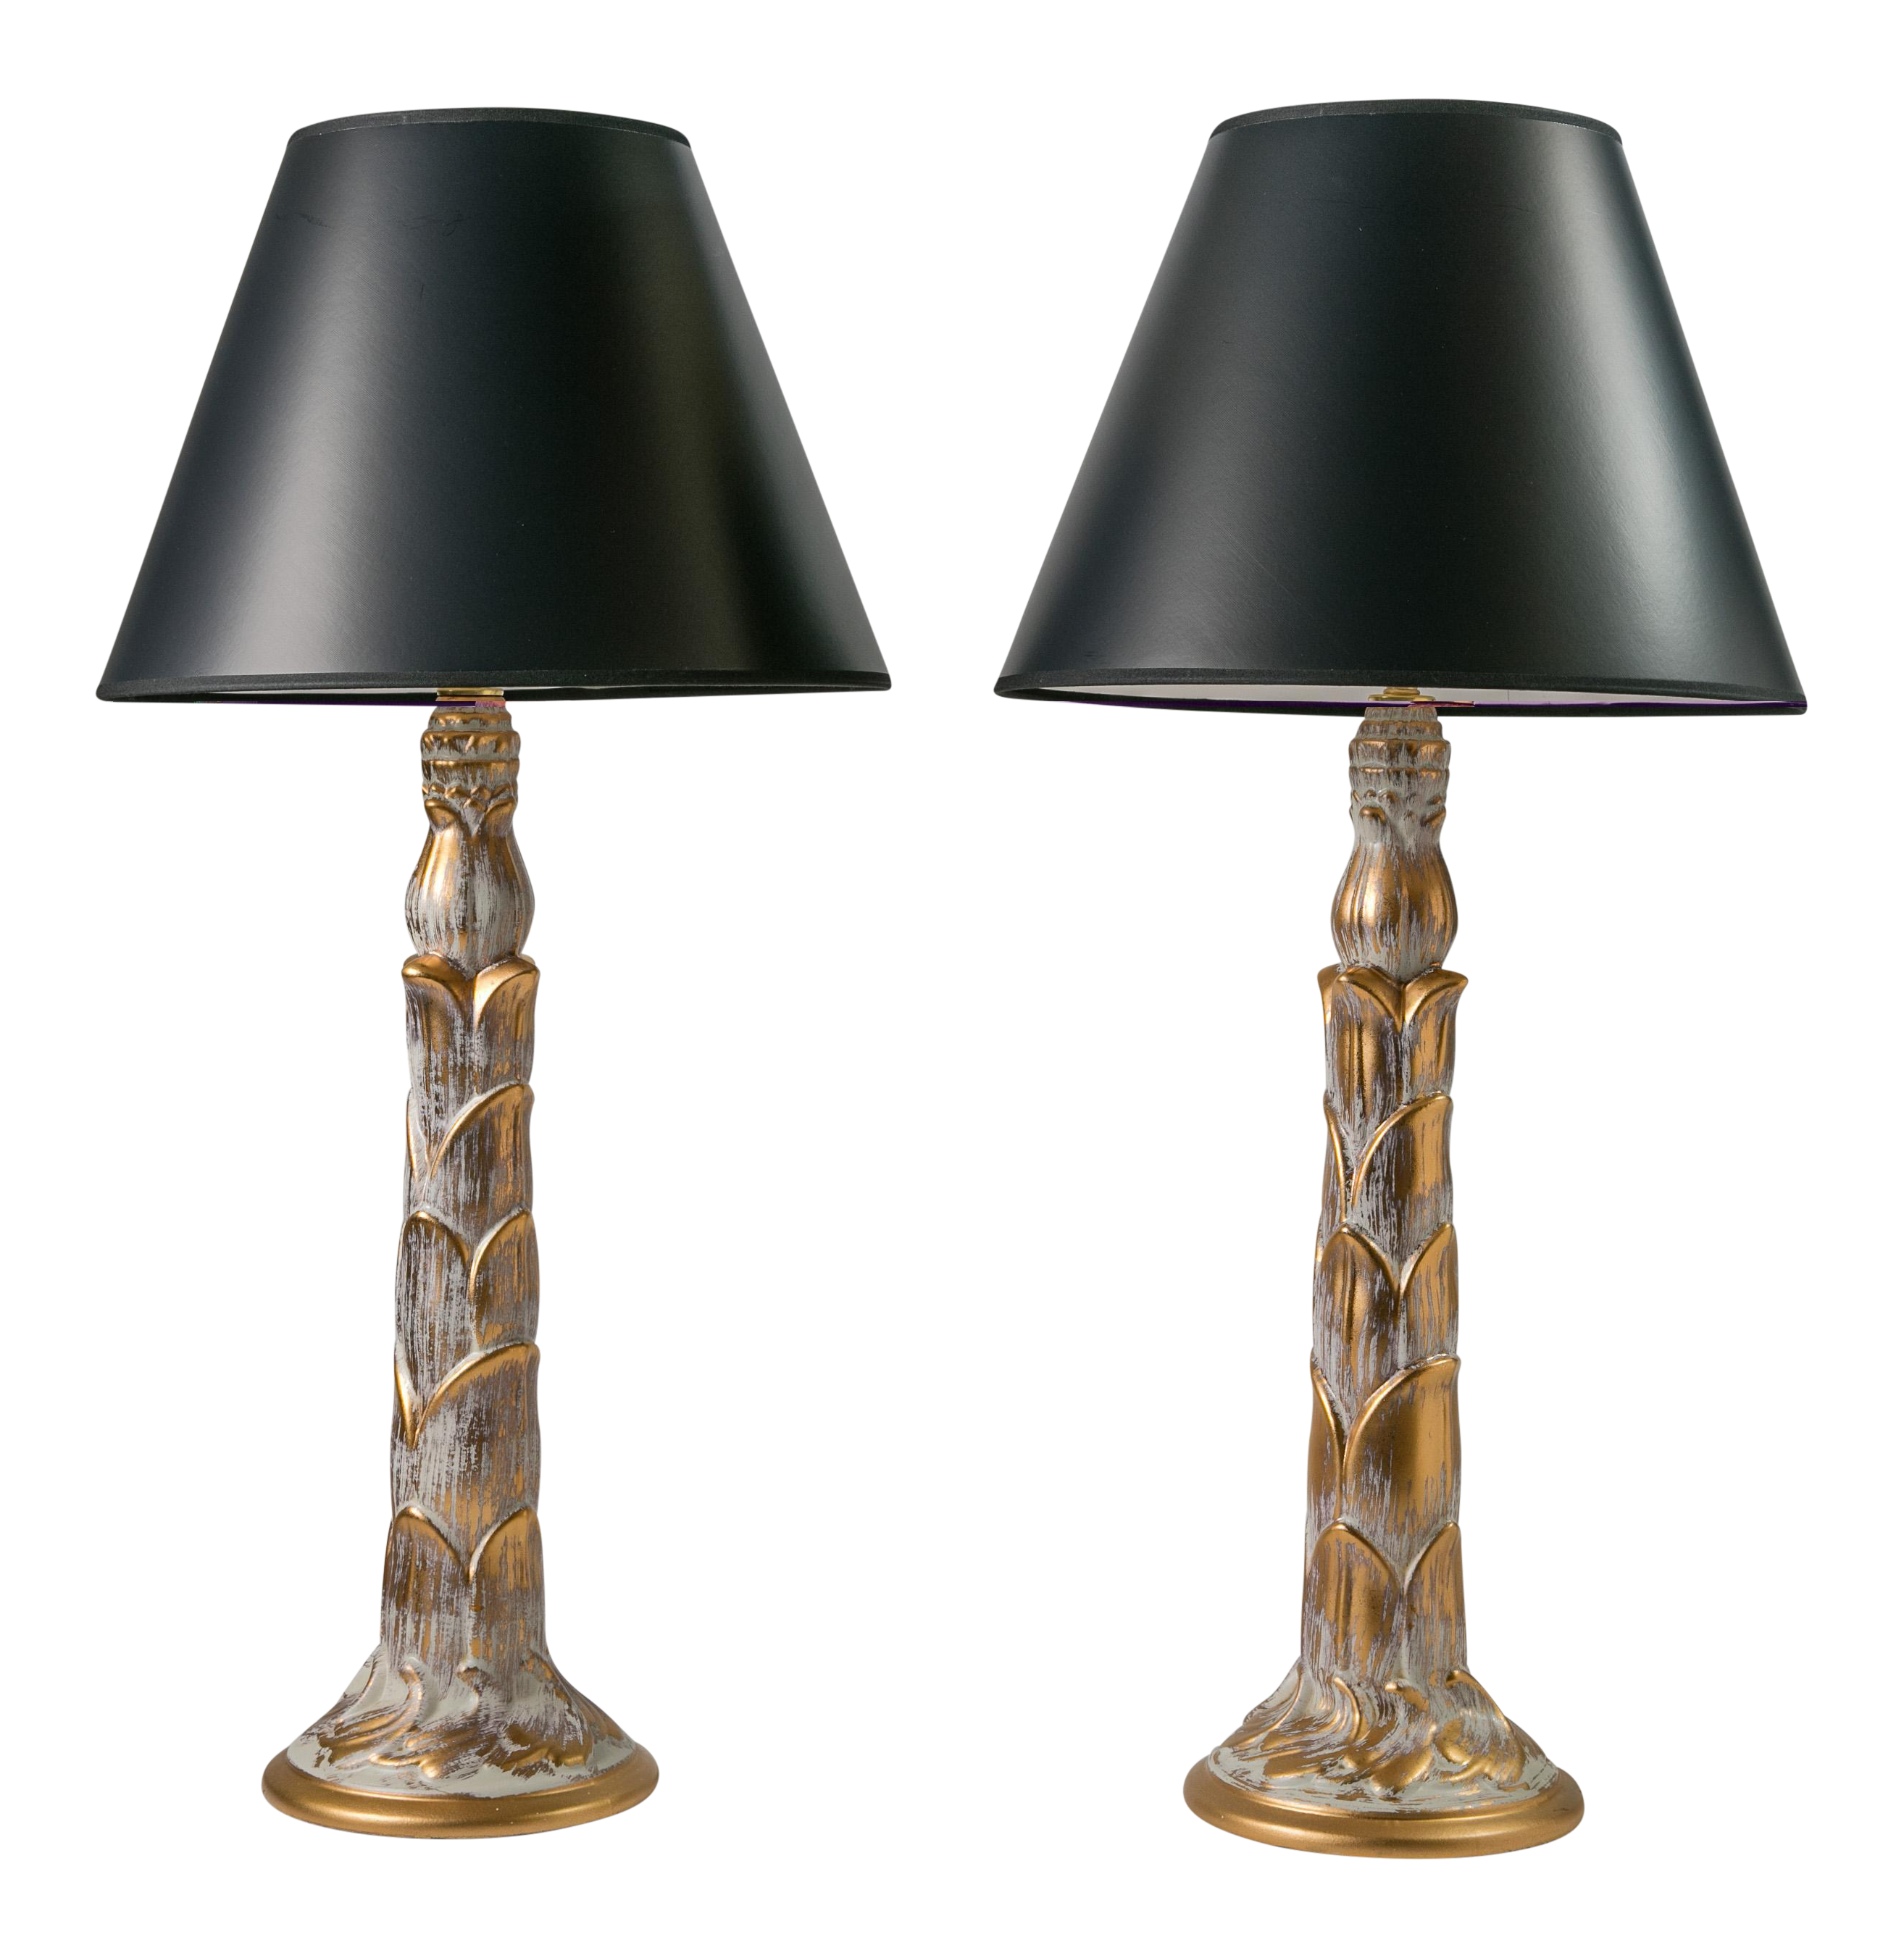 1950s Gilt Palm Style Hollywood Regency Ceramic Lamps   A Pair